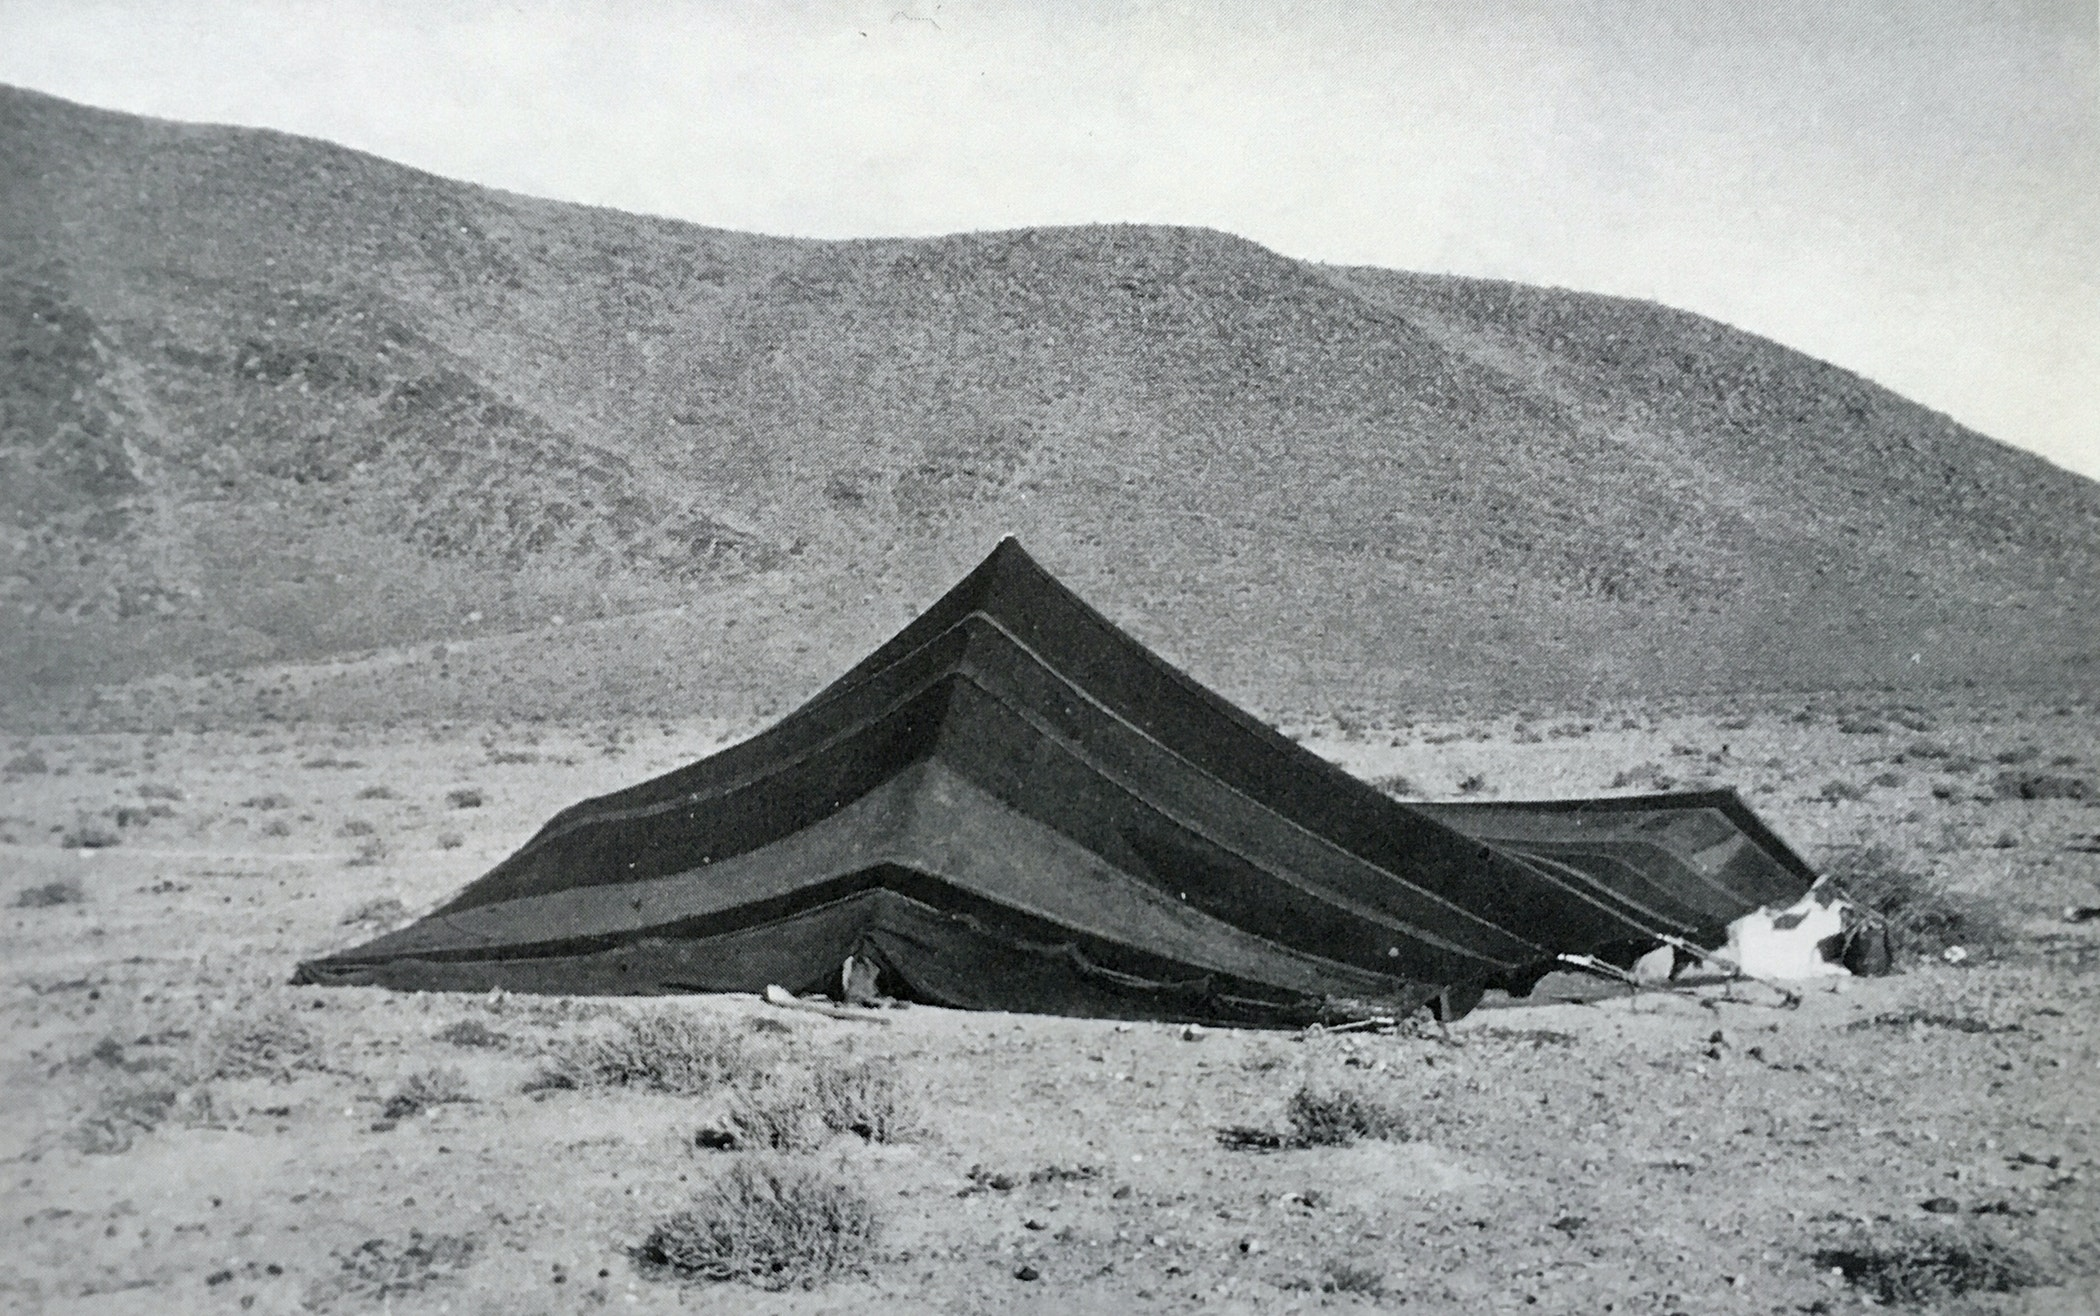 The back of a Tekna Lansas tent in southwest Morocco